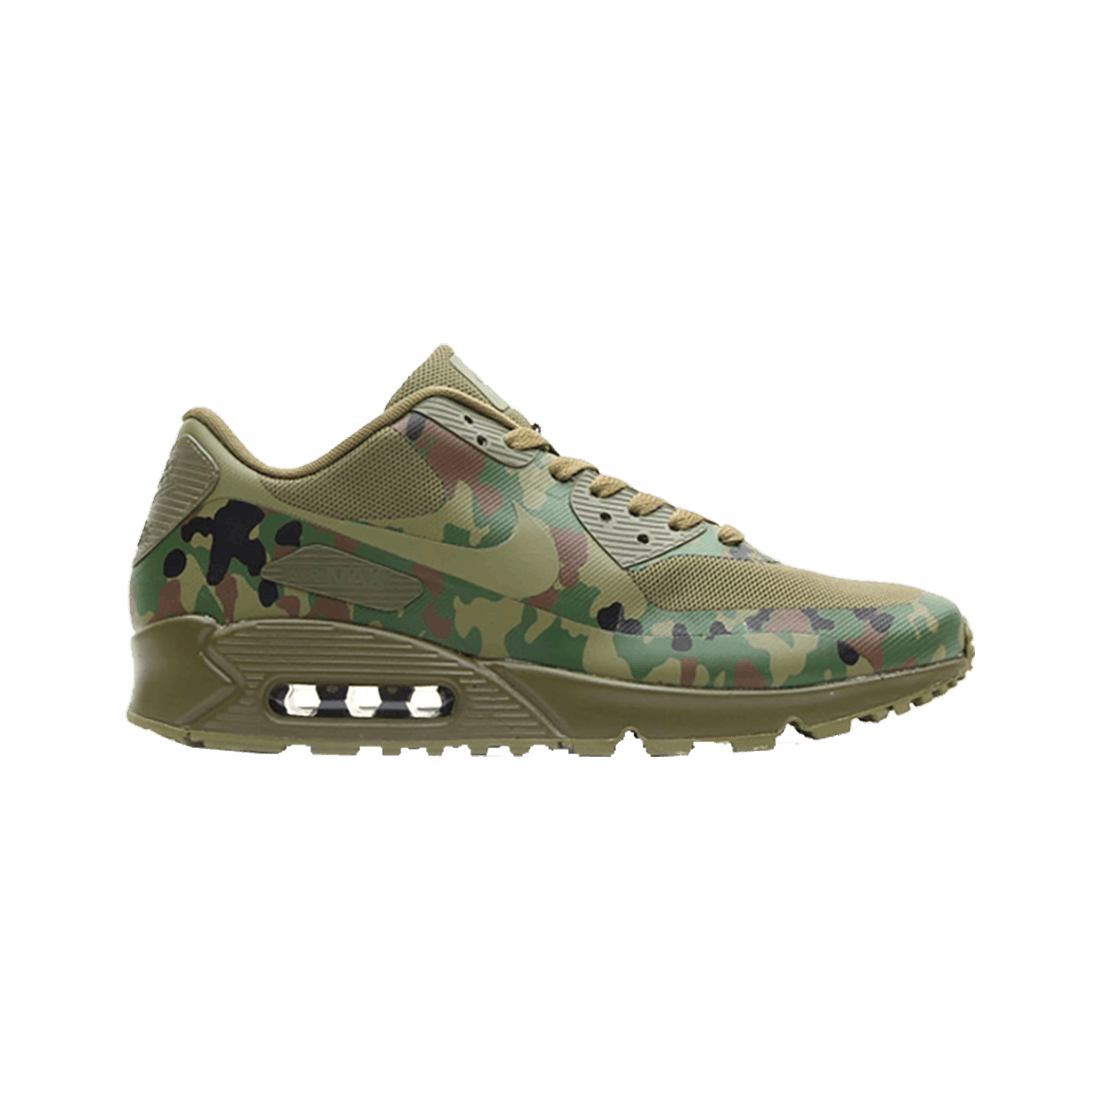 982edffe8c4 Air Max 90 Japan Sp 'Camo' - Nike - 624728 220 | GOAT